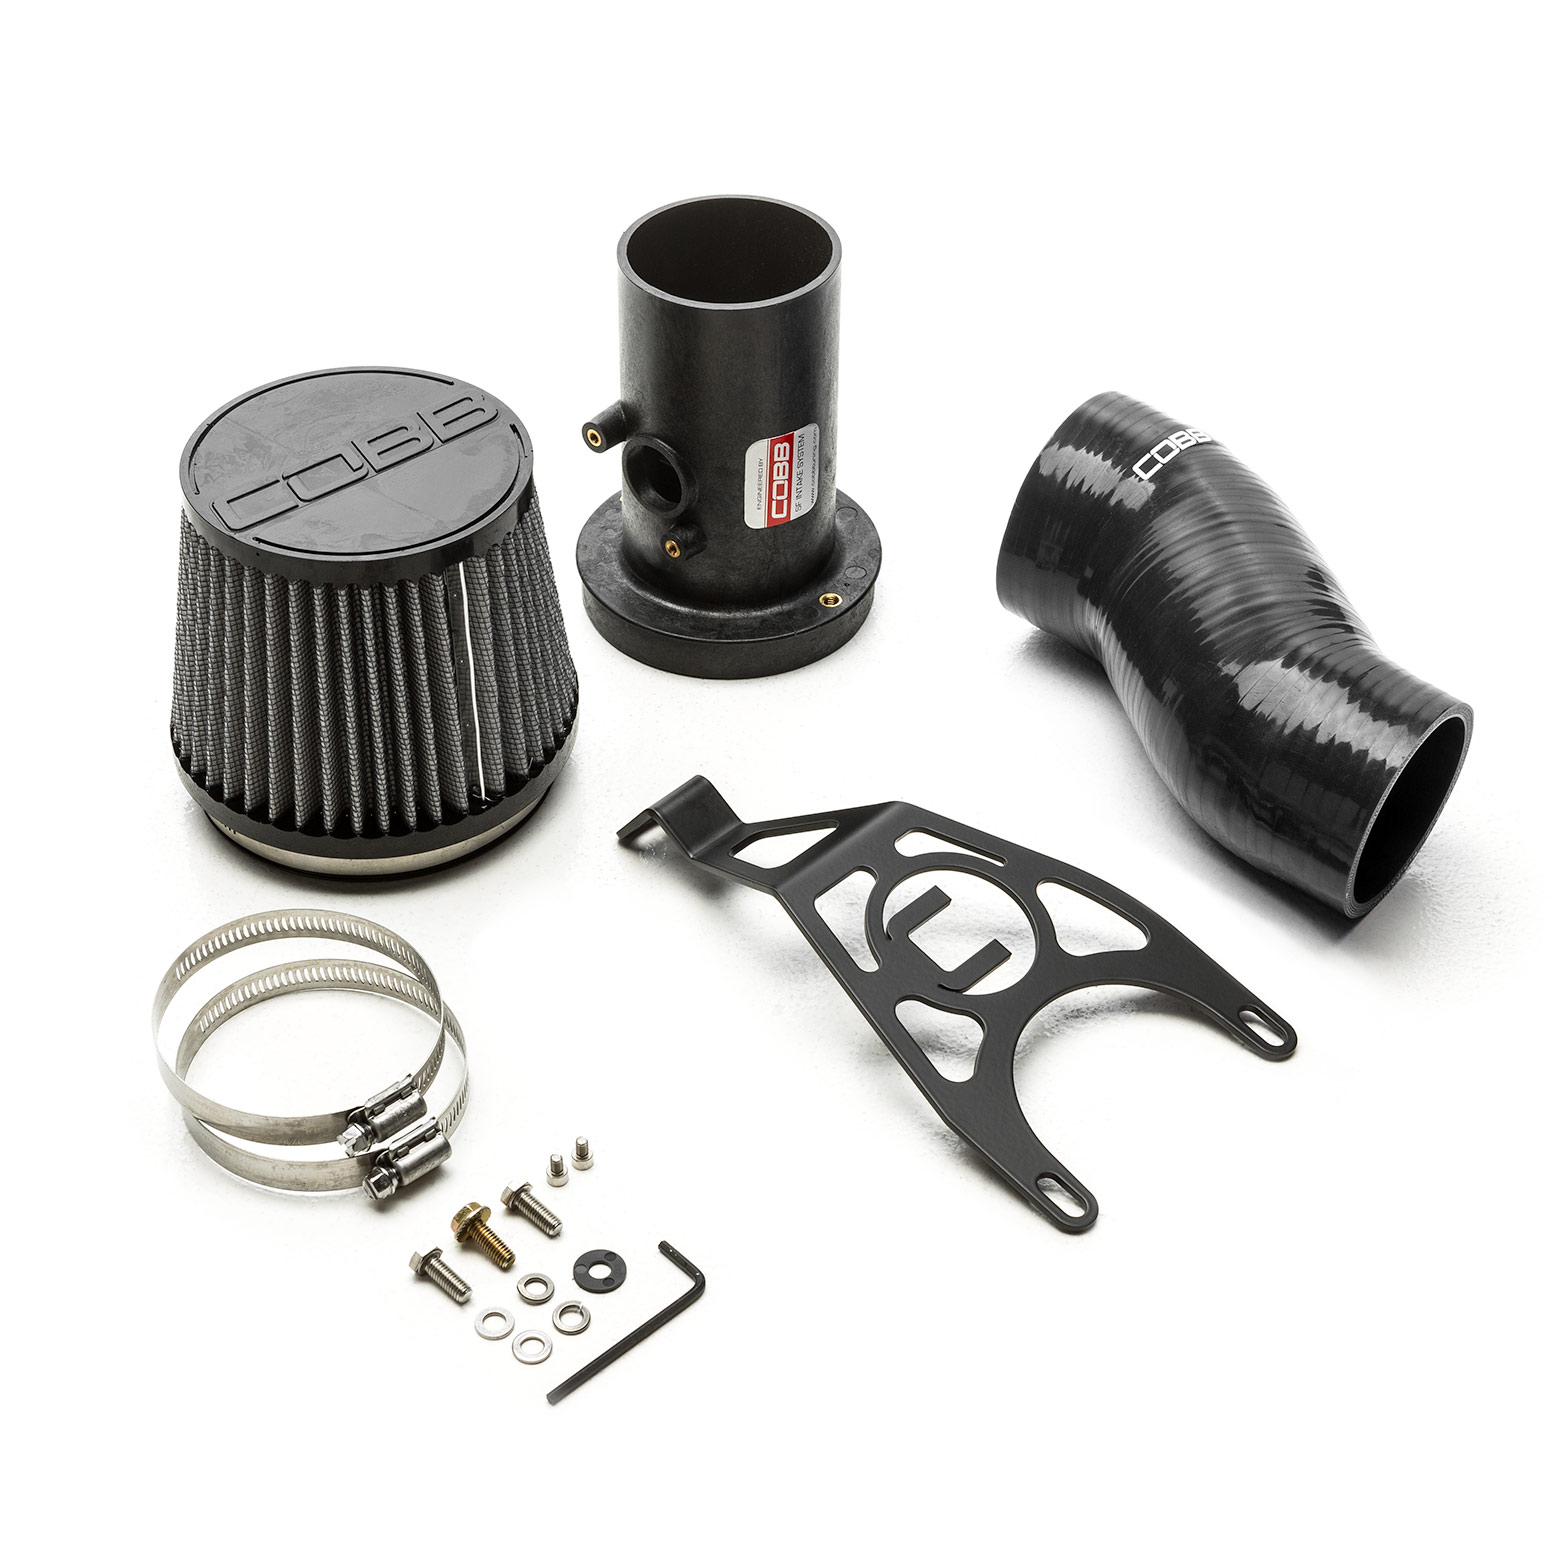 COBB Tuning - Subaru SF Intake and SF Airbox Kit